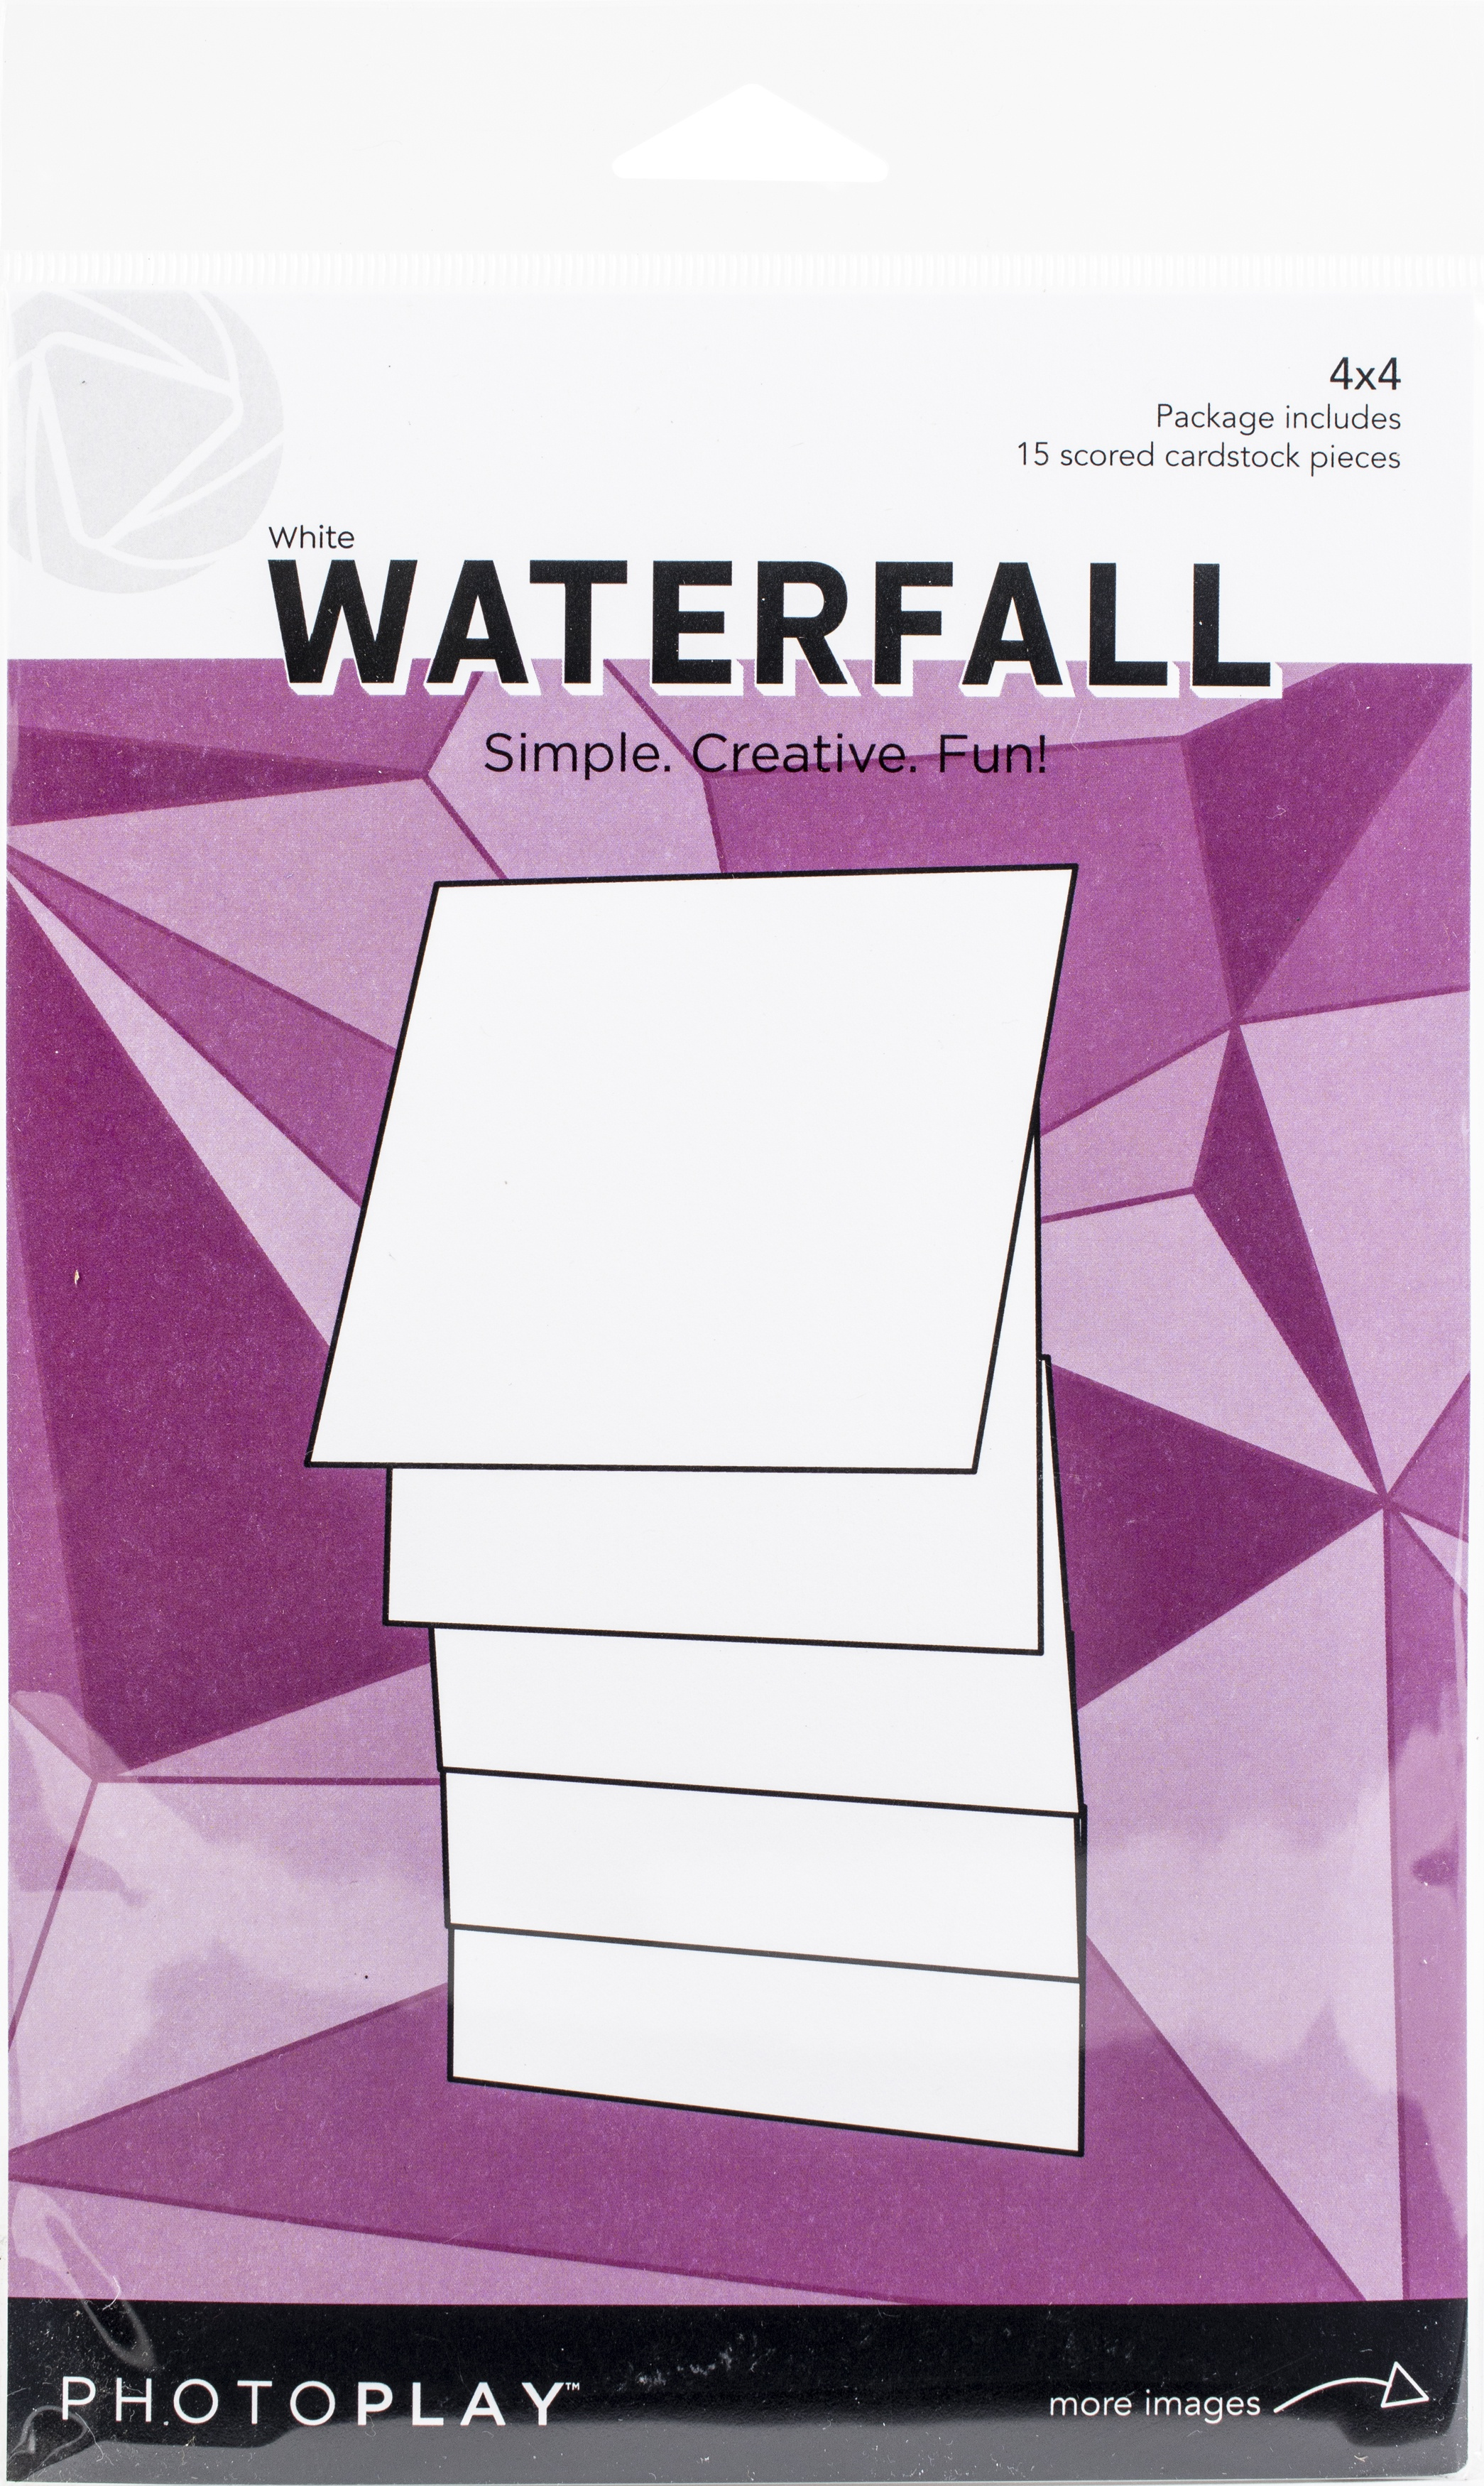 PhotoPlay Maker Series 4x4 Manual - White Waterfall